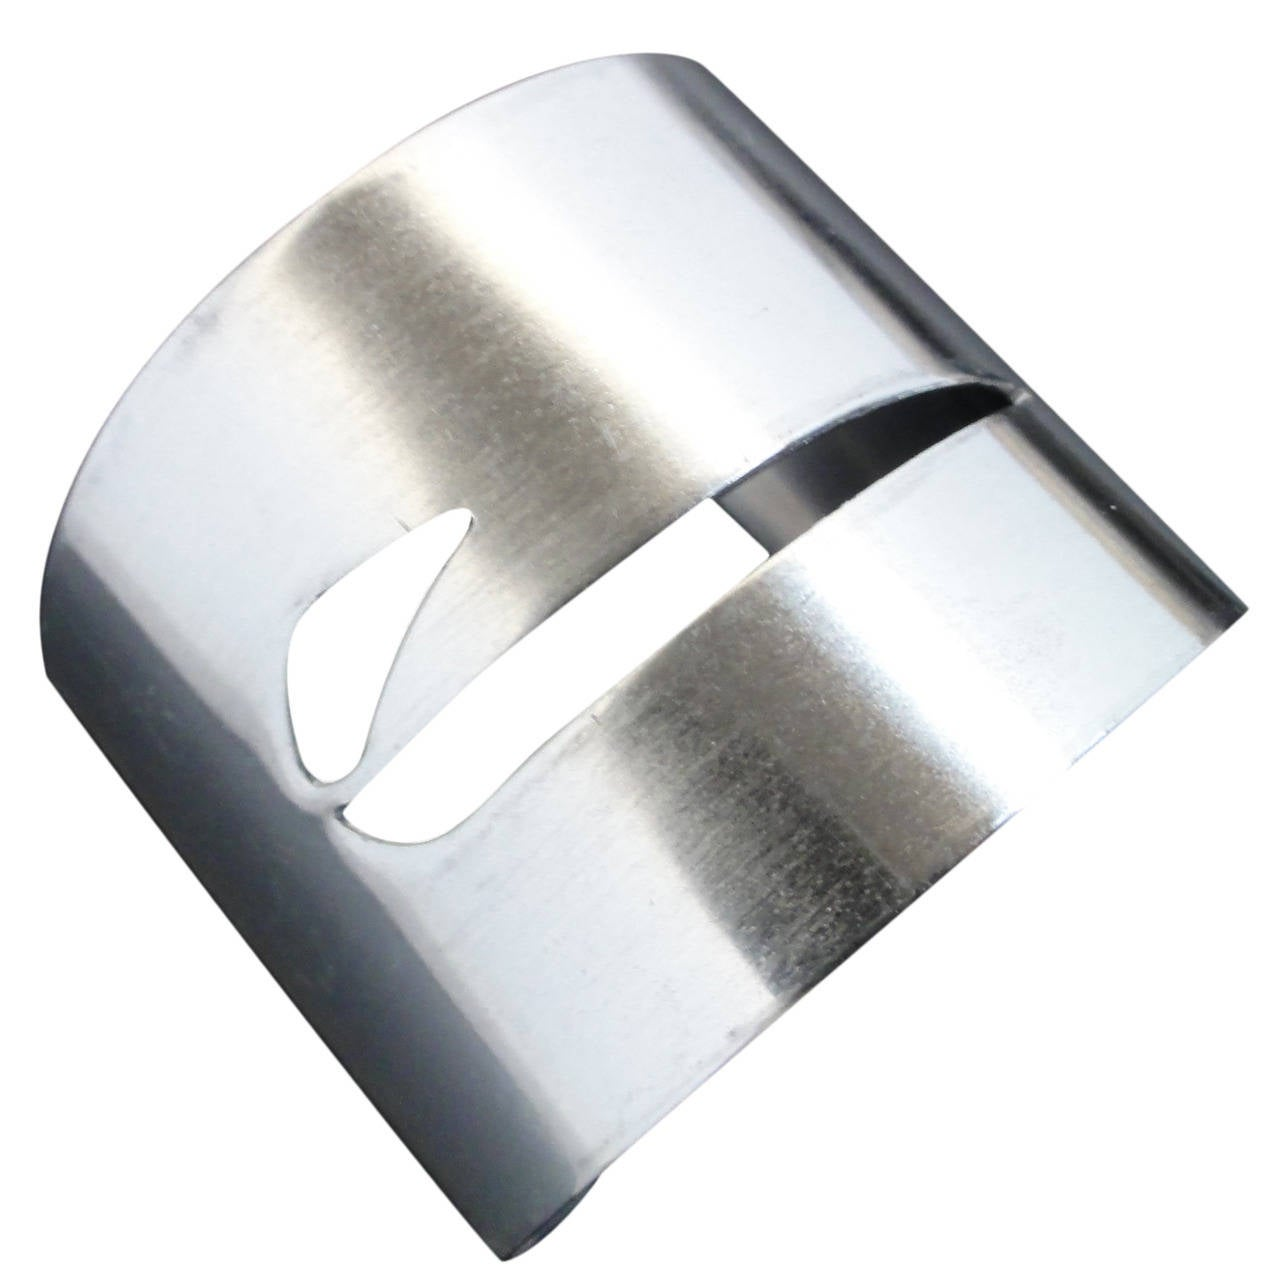 Super Elegant Napkin Rings by Sir Terence Conran for Concorde Supersonic 1968